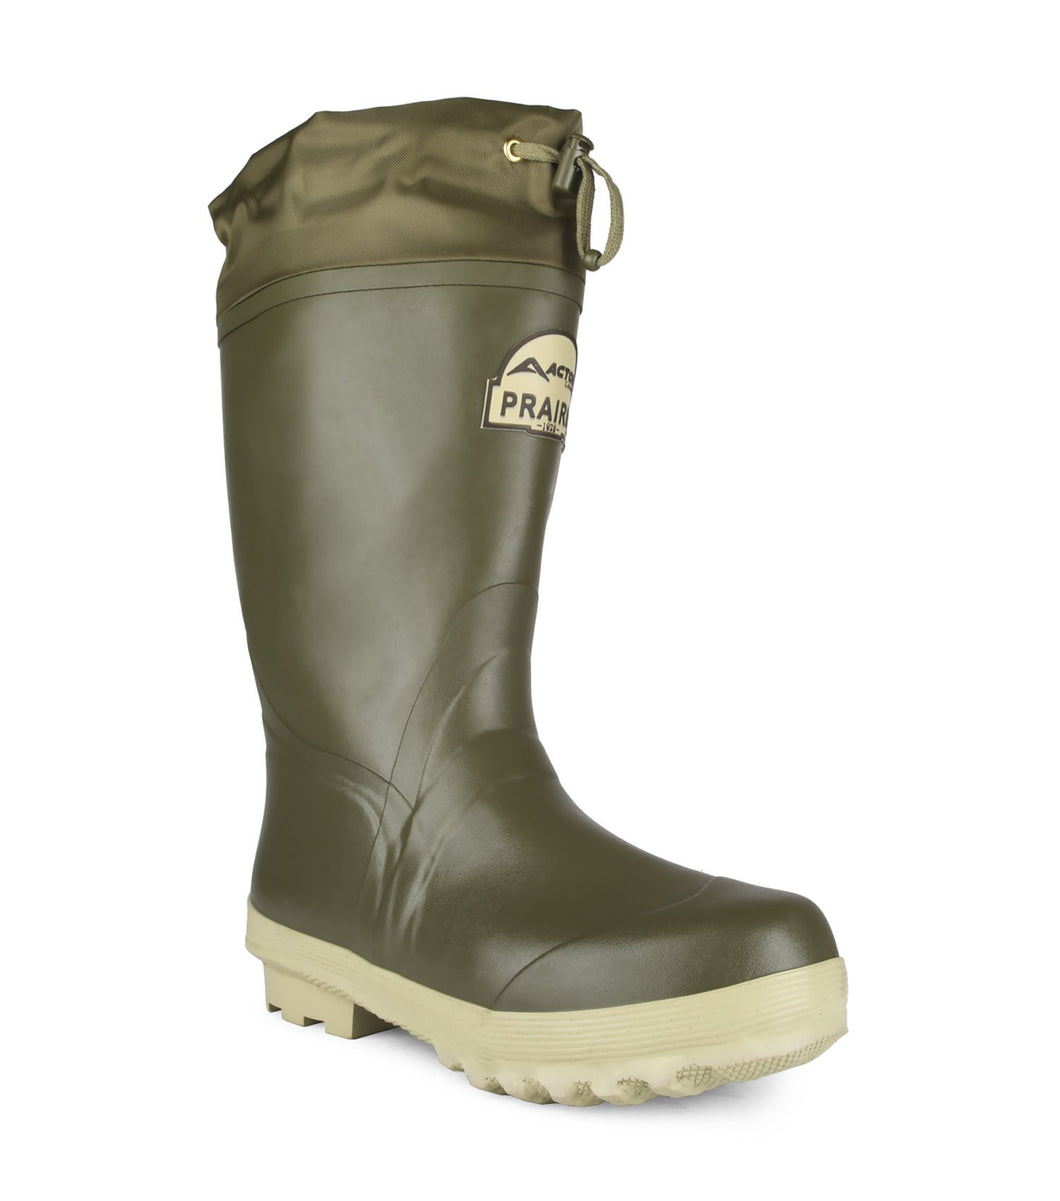 Acton | A3670-15 | Prairie Rubber Boot | Green